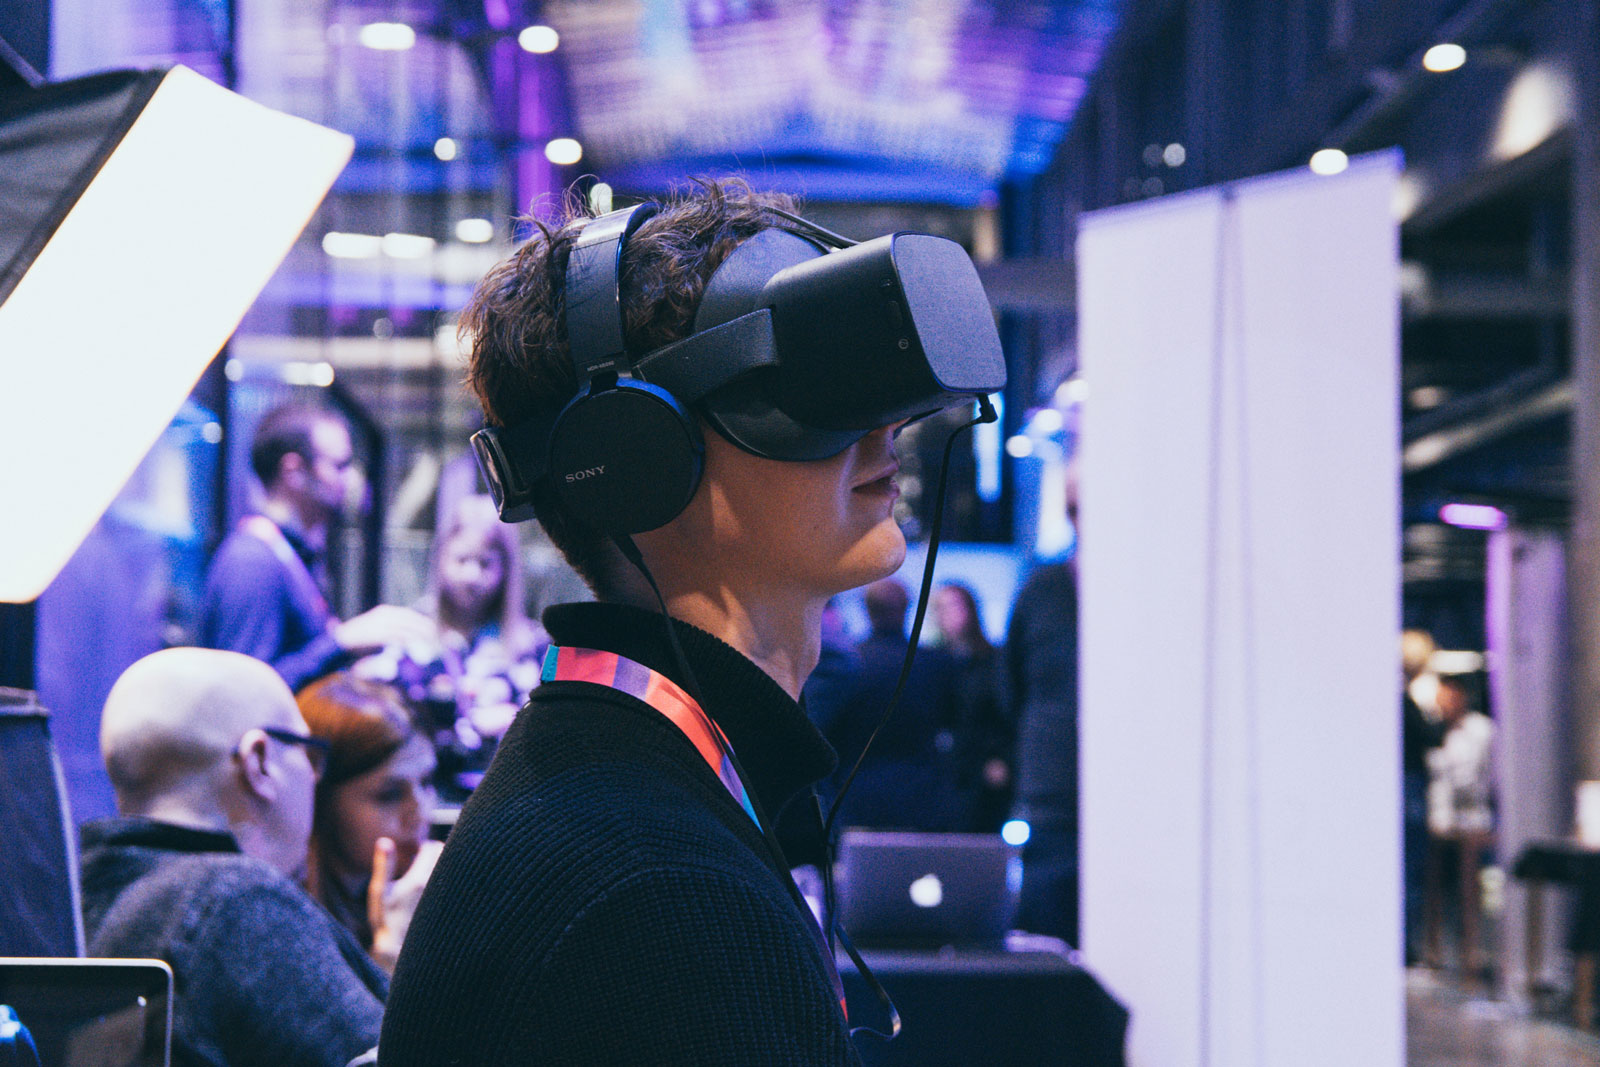 A man with a virtual reality headset on his head is looking up.